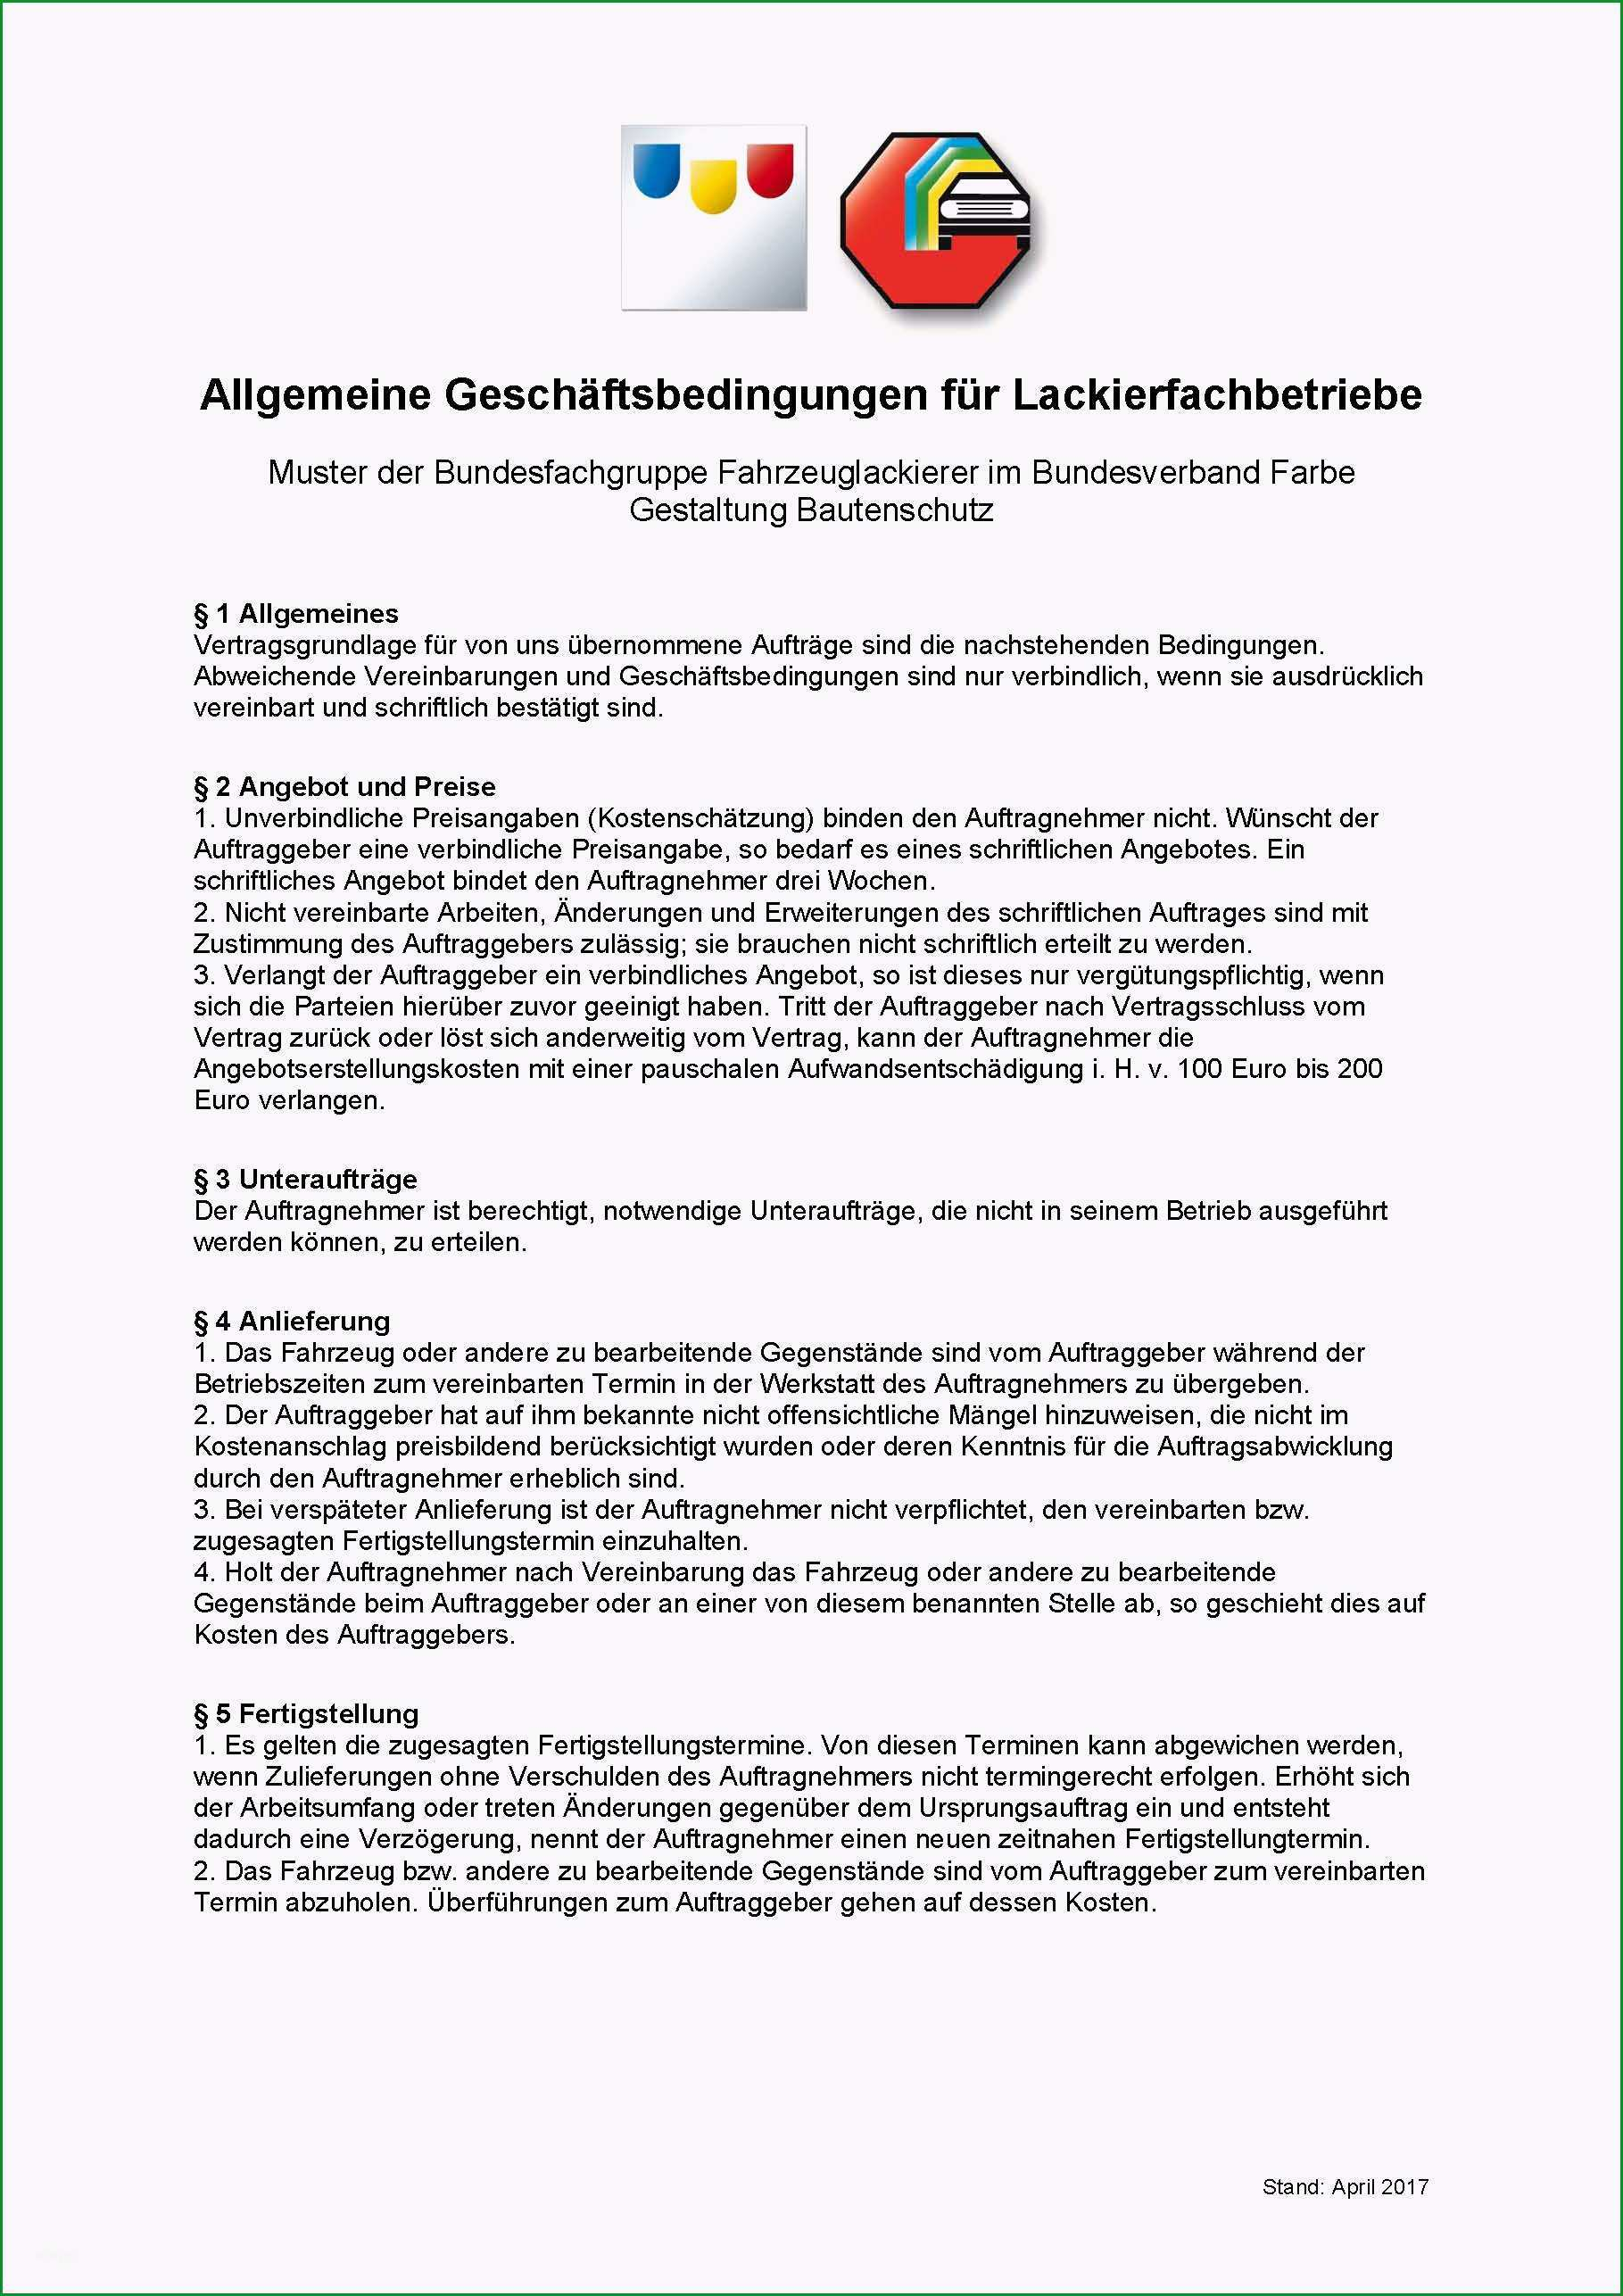 agb fuer lackierfachbetriebe ueberarbeitet stand april 2017